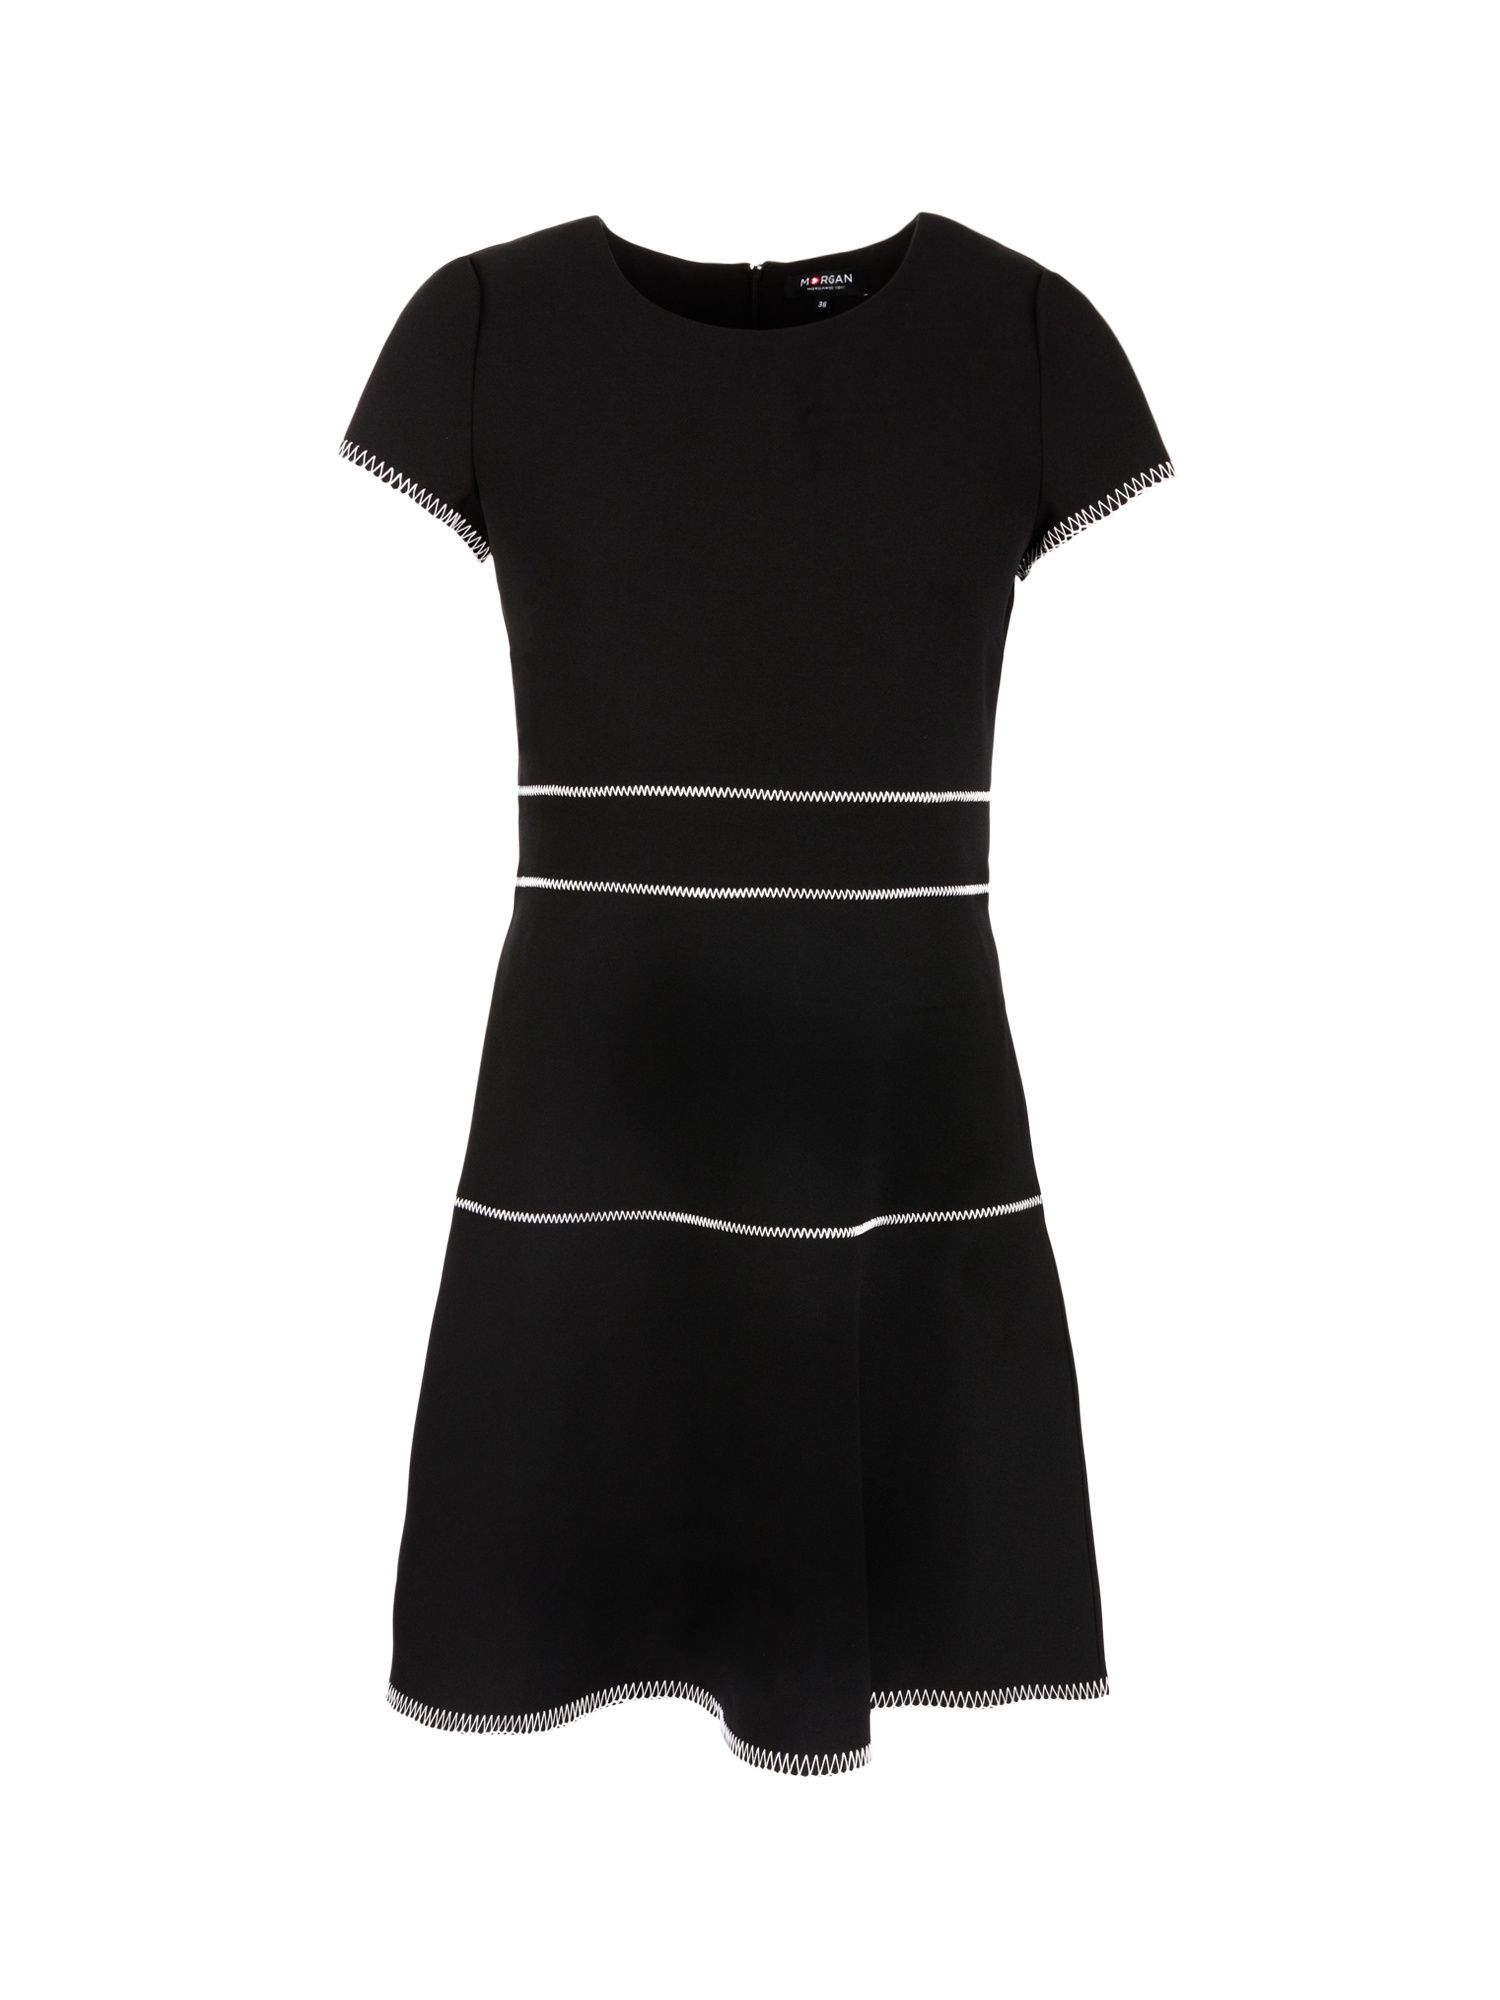 Morgan Overstitchings Crepe Dress, Black